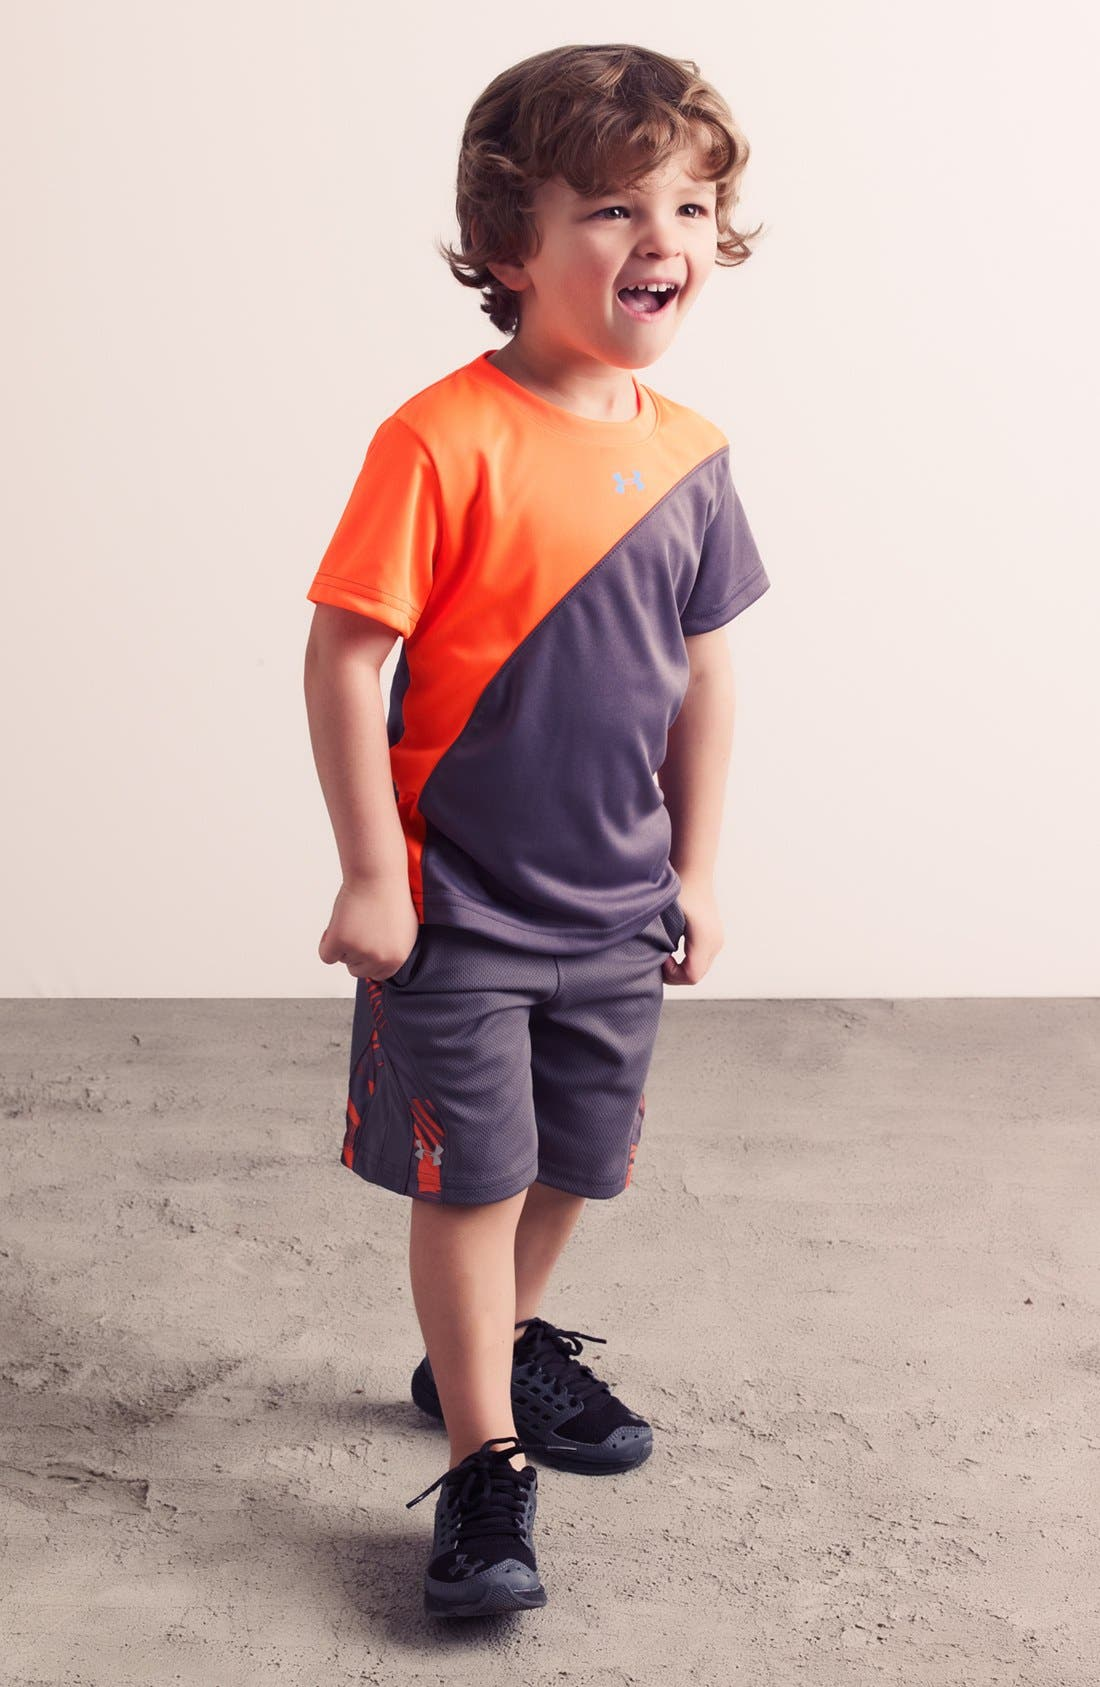 Alternate Image 1 Selected - Under Armour T-Shirt, Shorts & Sneaker (Toddler)